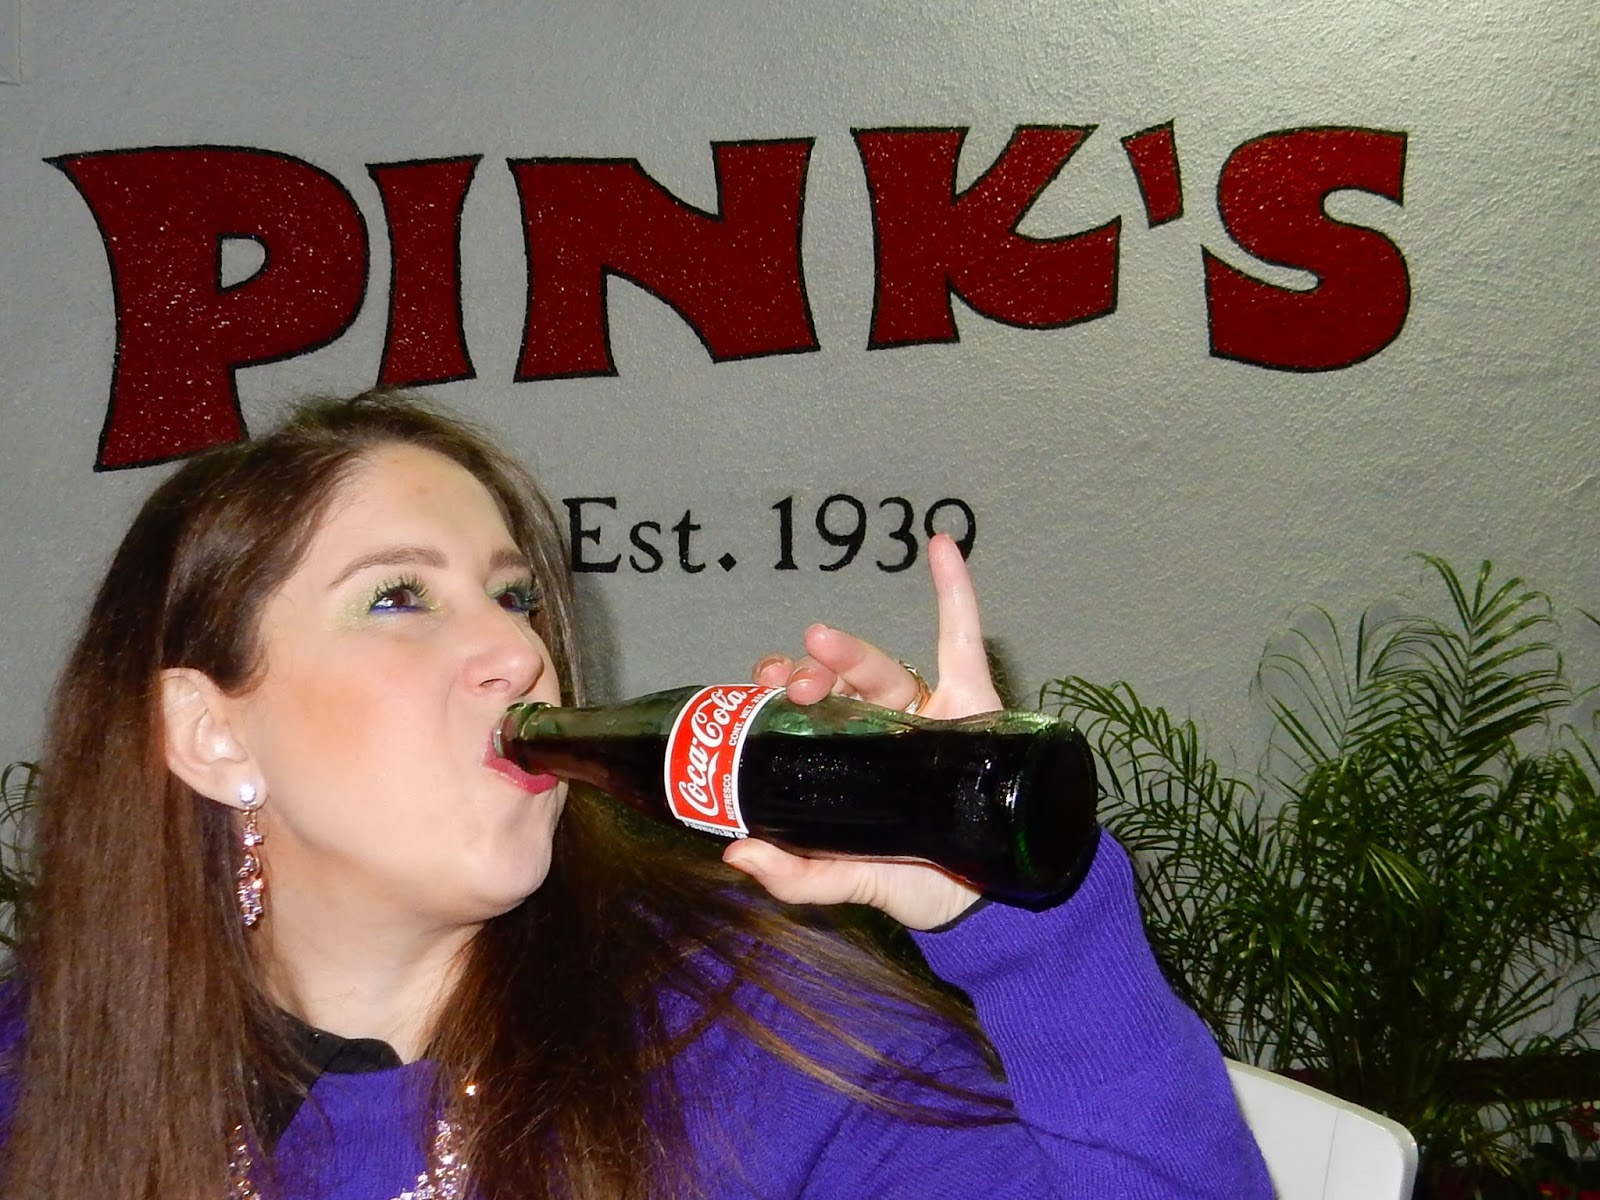 Pink's hollywood hot dogs marisa the high heeled brunette.